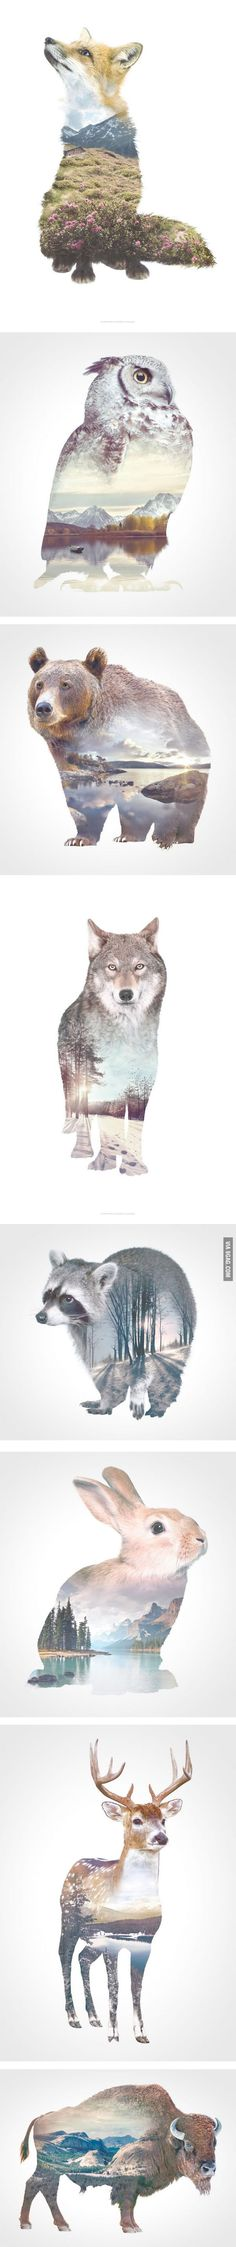 Incredible Double-Exposure Animal Portraits